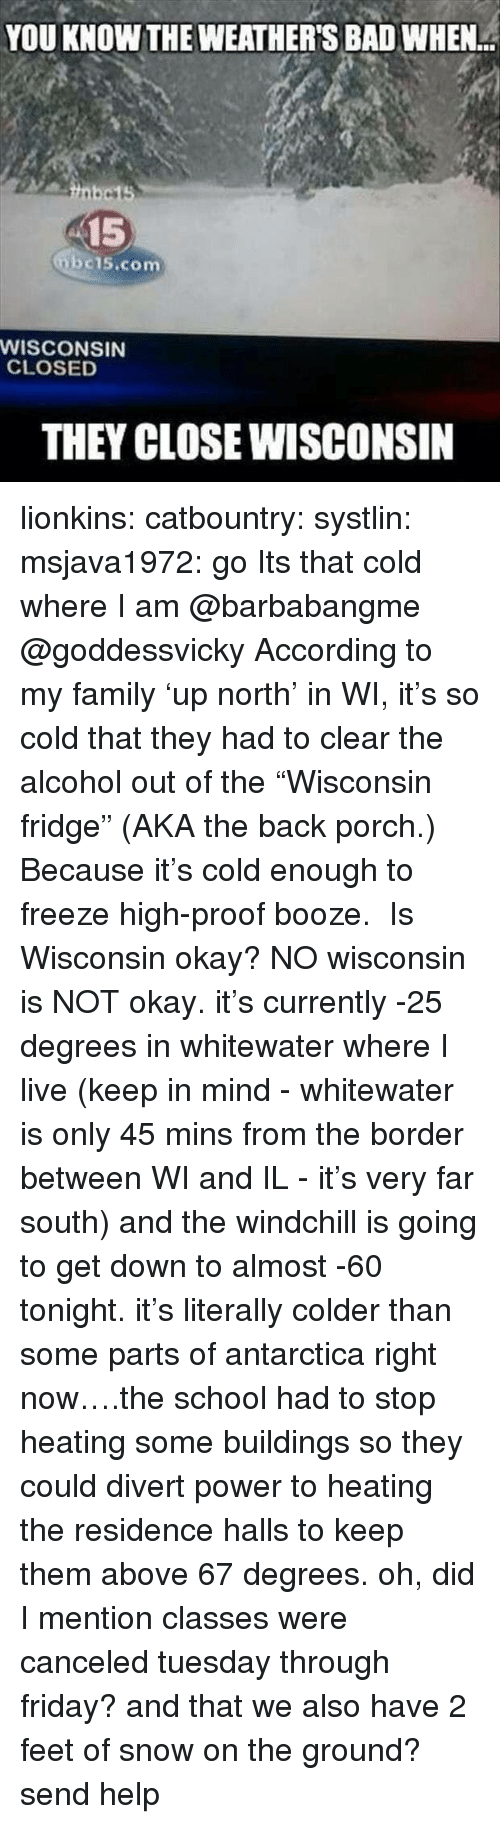 "Send Help: YOU KNOW THE WEATHER'S BAD WHEN  15  bc15.com  WISCONSIN  CLOSED  THEY CLOSE WISCONSIN lionkins:  catbountry:  systlin:  msjava1972:  go Its that cold where I am @barbabangme @goddessvicky  According to my family 'up north' in WI, it's so cold that they had to clear the alcohol out of the ""Wisconsin fridge"" (AKA the back porch.) Because it's cold enough to freeze high-proof booze.   Is Wisconsin okay?  NO wisconsin is NOT okay. it's currently -25 degrees in whitewater where I live (keep in mind - whitewater is only 45 mins from the border between WI and IL - it's very far south) and the windchill is going to get down to almost -60 tonight. it's literally colder than some parts of antarctica right now….the school had to stop heating some buildings so they could divert power to heating the residence halls to keep them above 67 degrees. oh, did I mention classes were canceled tuesday through friday? and that we also have 2 feet of snow on the ground?send help"